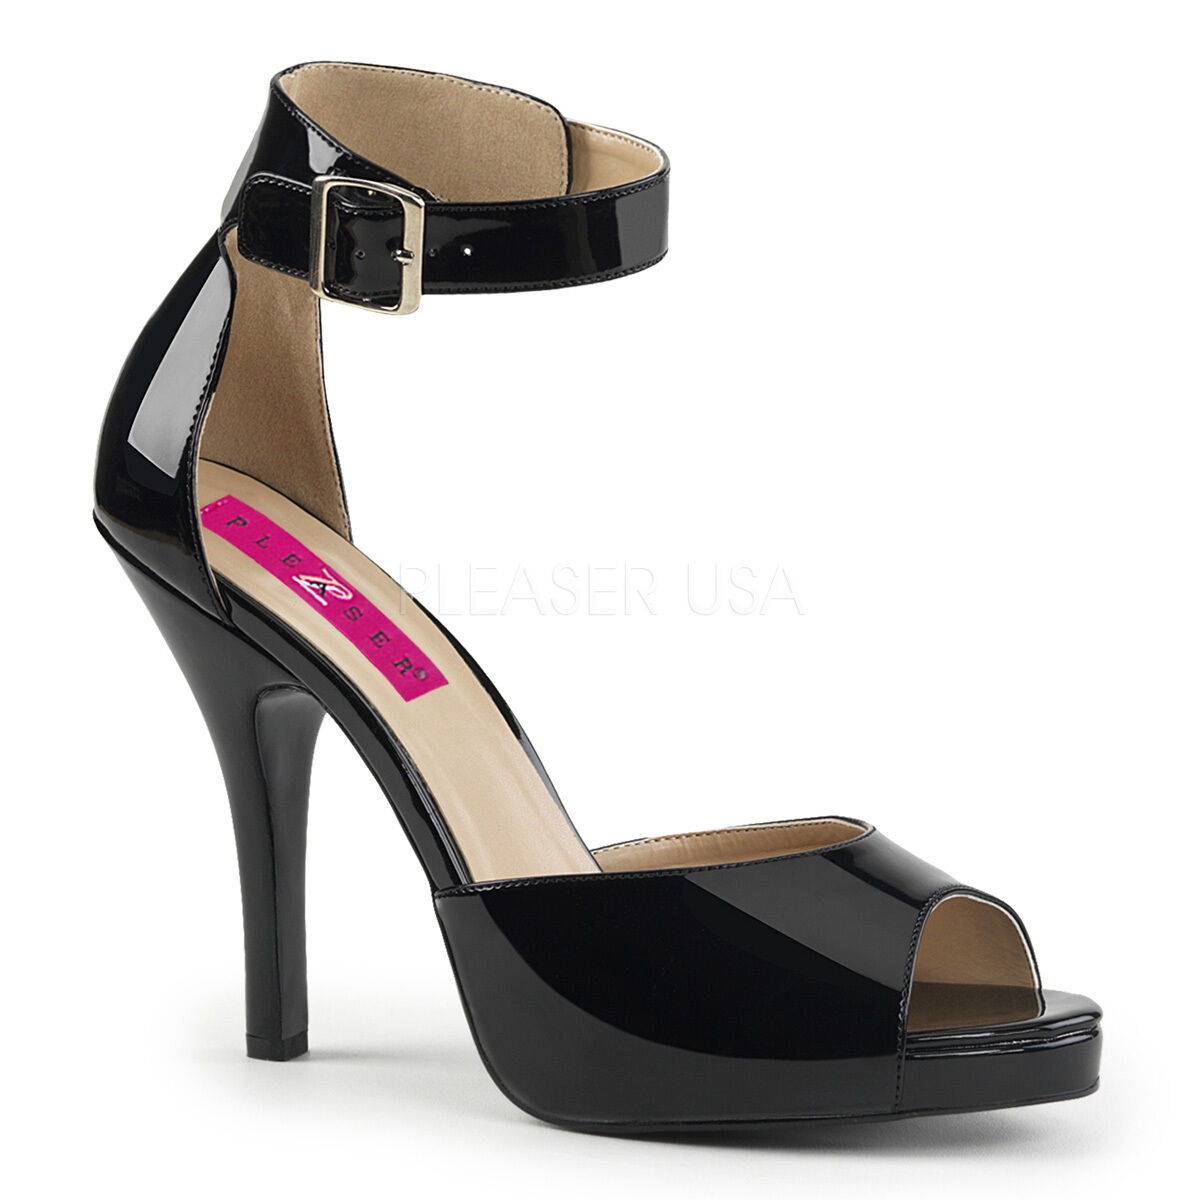 Pleaser Eve-02 shoes 5  High Heels Platform Sandals Sandals Sandals Ankle Strap Drag Queen New 285758